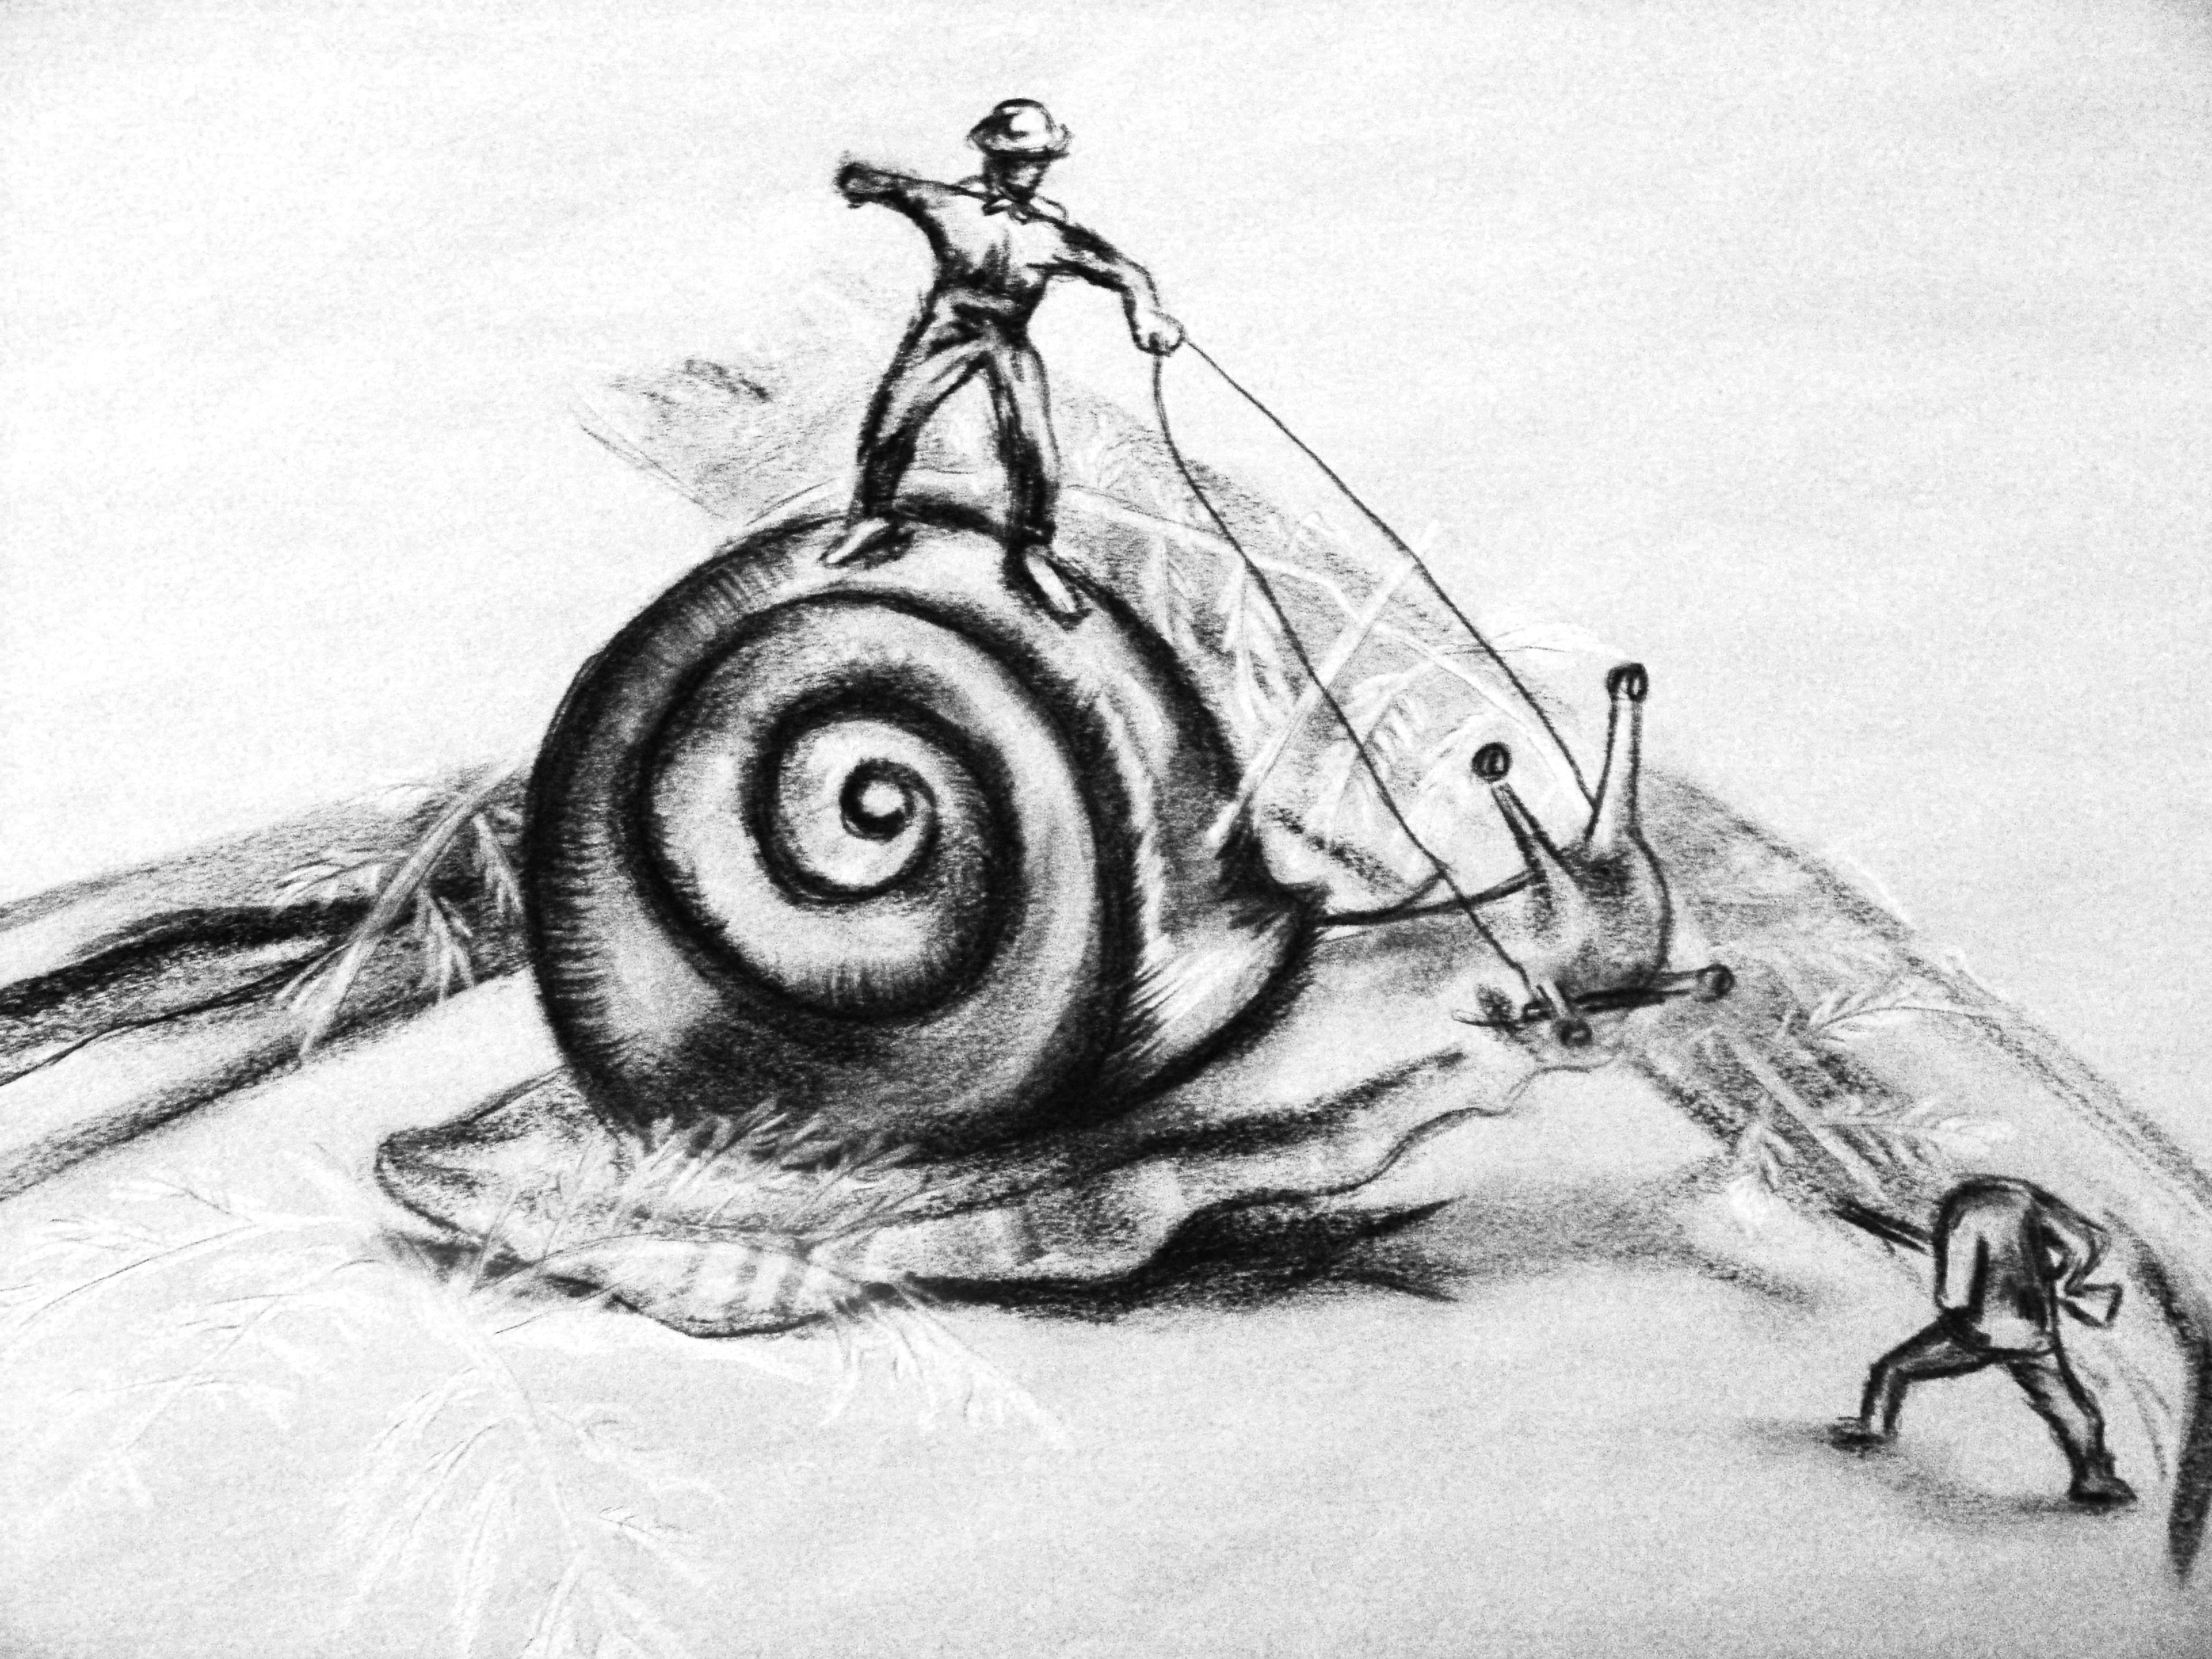 warrior snail2.jpg